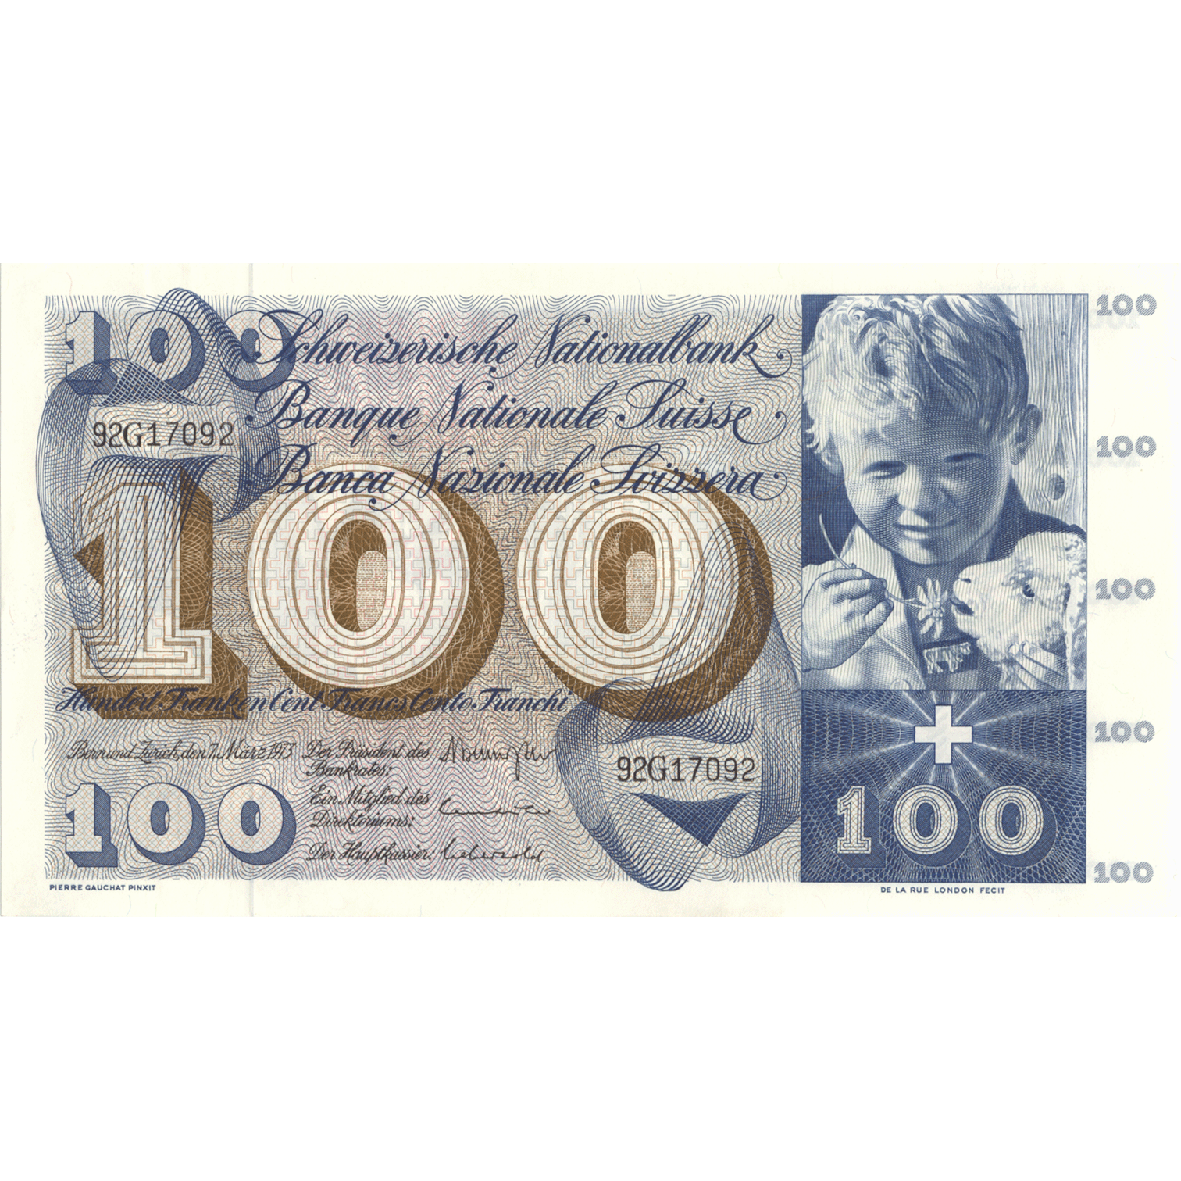 Swiss Confederation, 100 Francs (5th Banknote Series, in Circulation 1956-1980) (obverse)